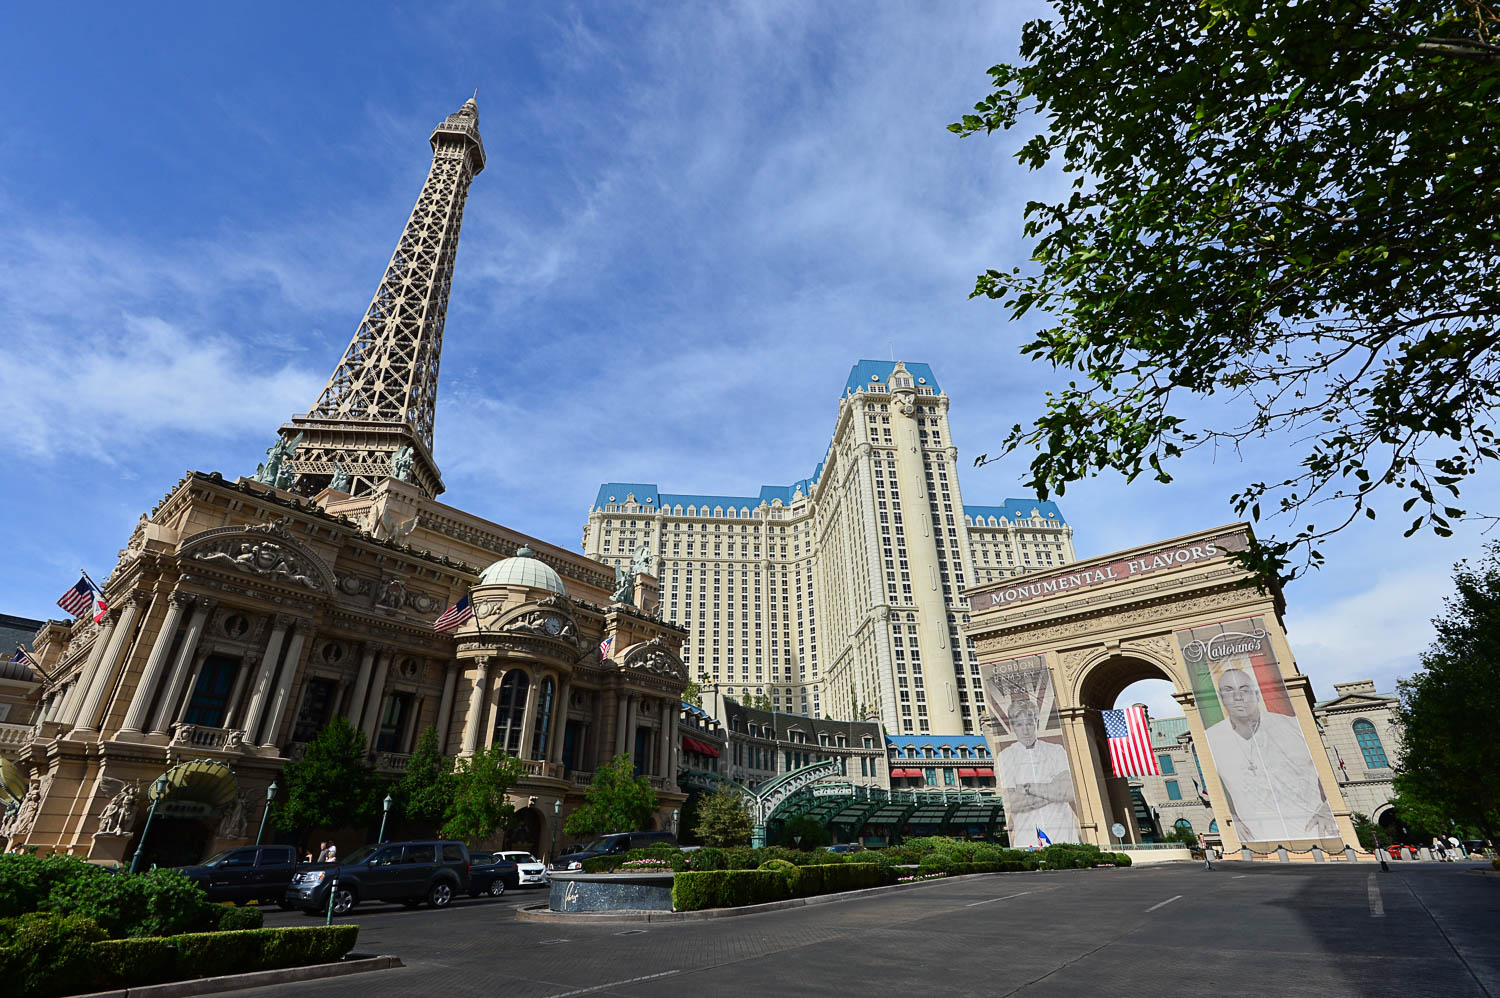 las vegas full of surprises gambling city holidays leisure time the epoch times. Black Bedroom Furniture Sets. Home Design Ideas